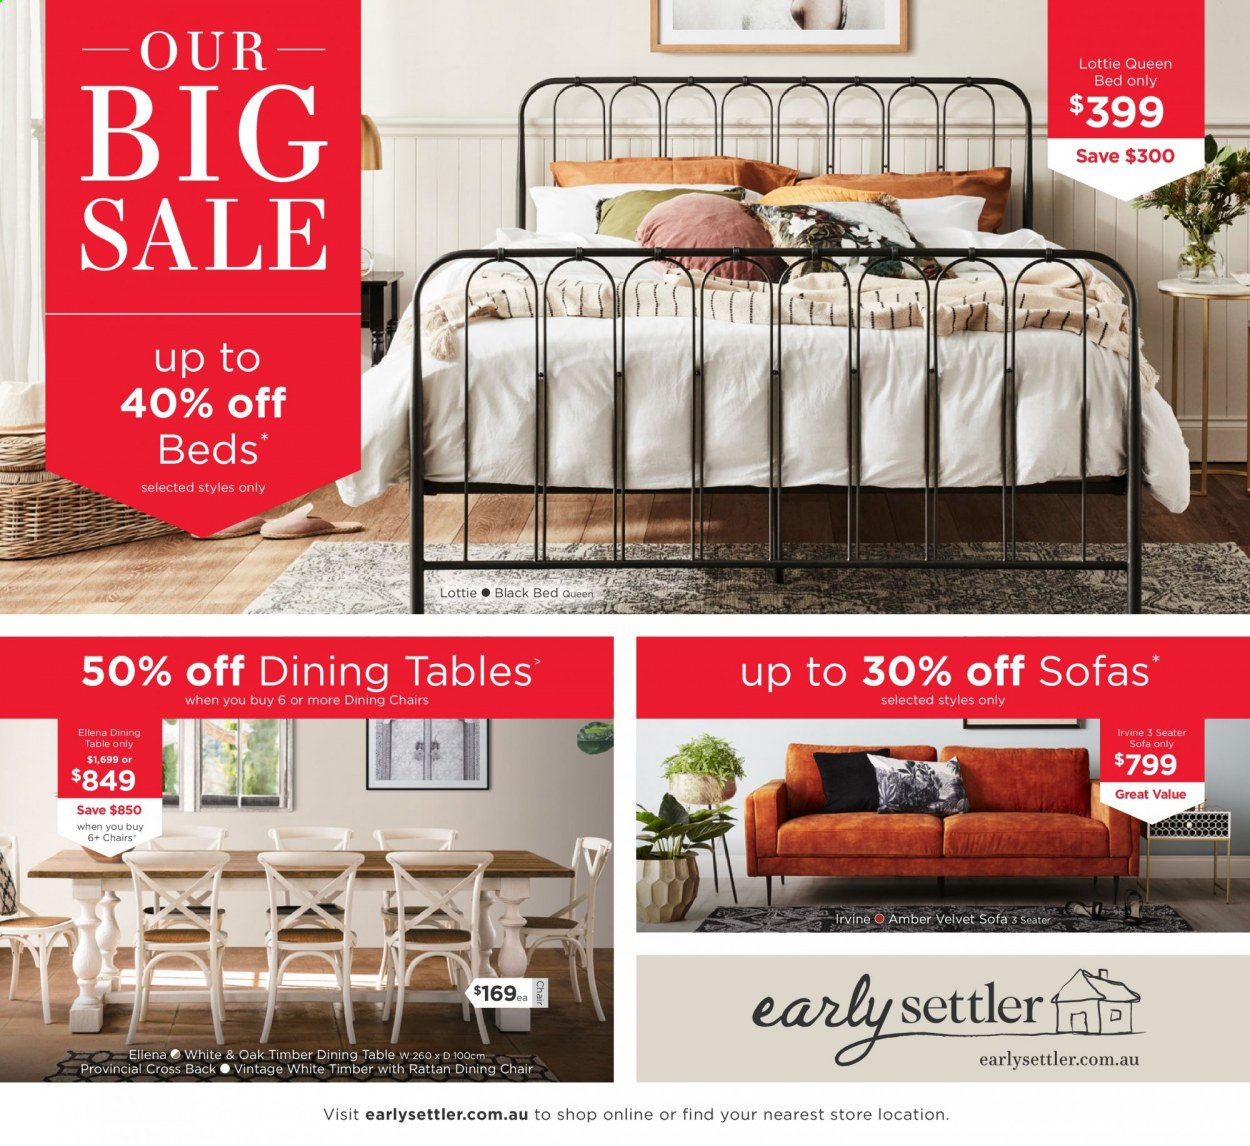 Early Settler Catalogue - 24.12.2020 - 31.1.2021 - Sales products - dining table, dining chair, sofa, table, chair, queen bed. Page 1.